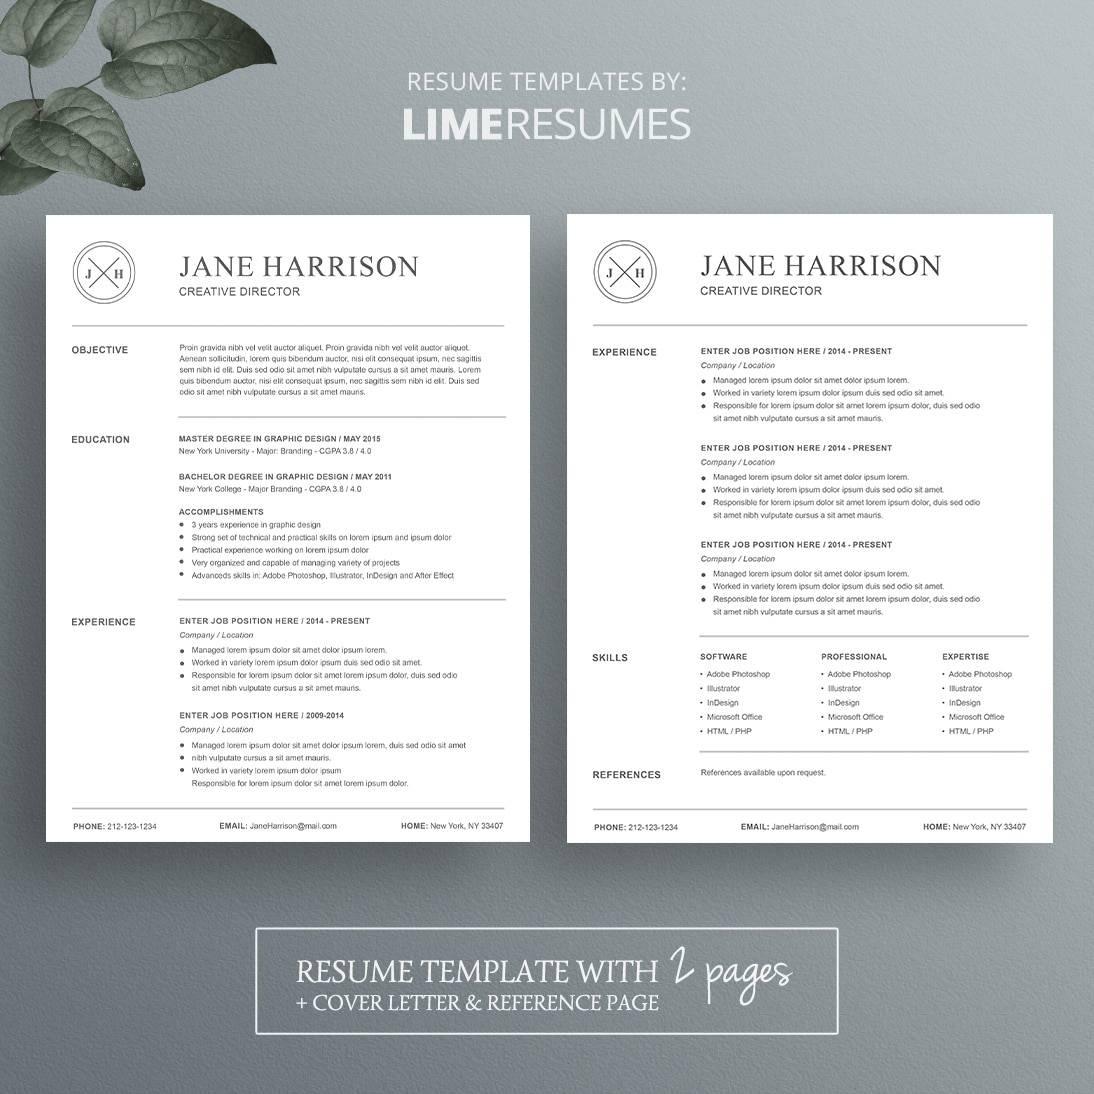 Is There A Resume Template In Microsoft Word 2007 Resume Template 23 Limeresumes